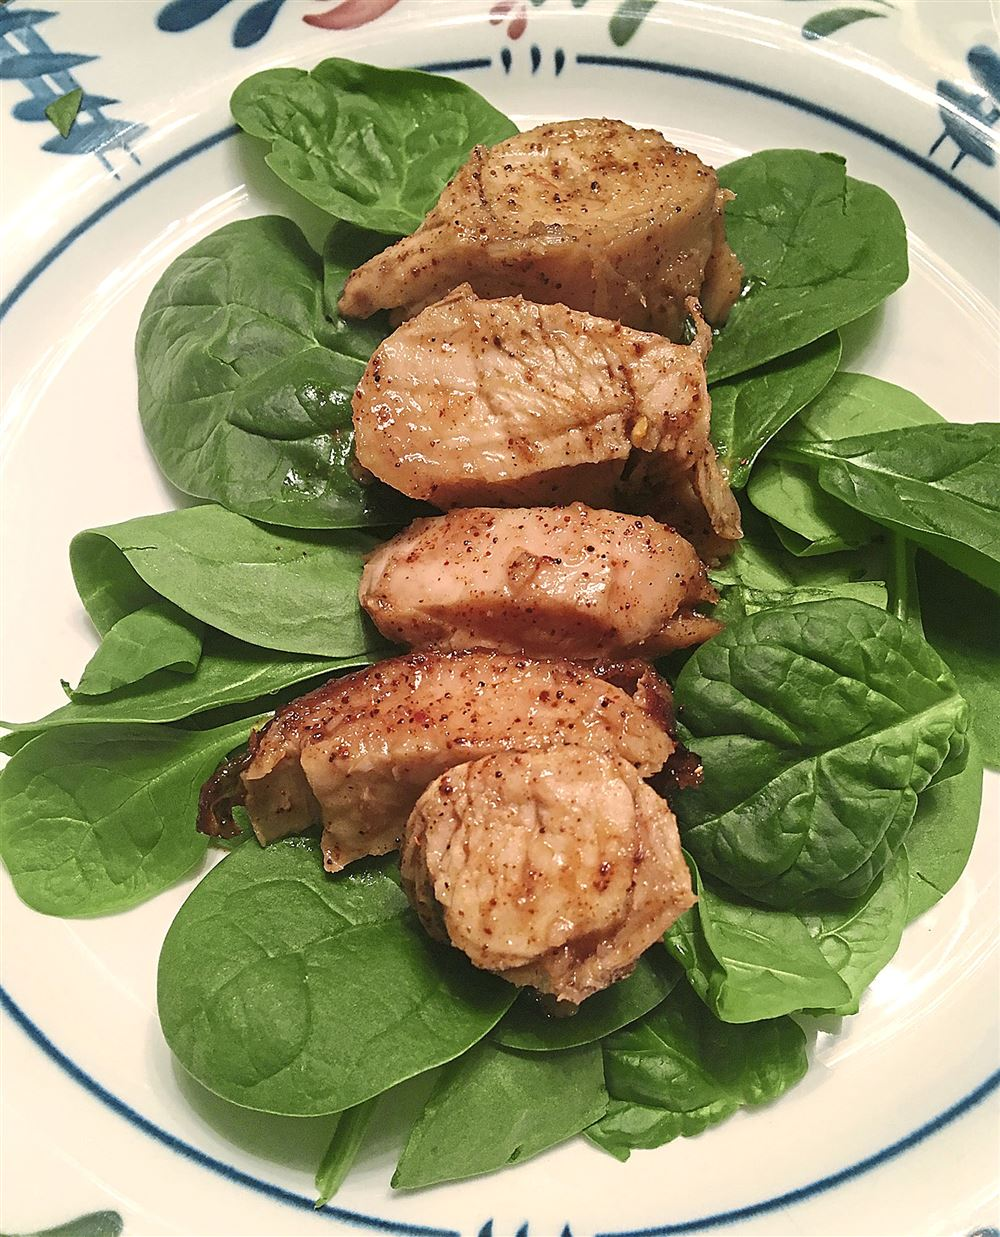 Turkey with a rum glaze on a bed of leaf spinach.